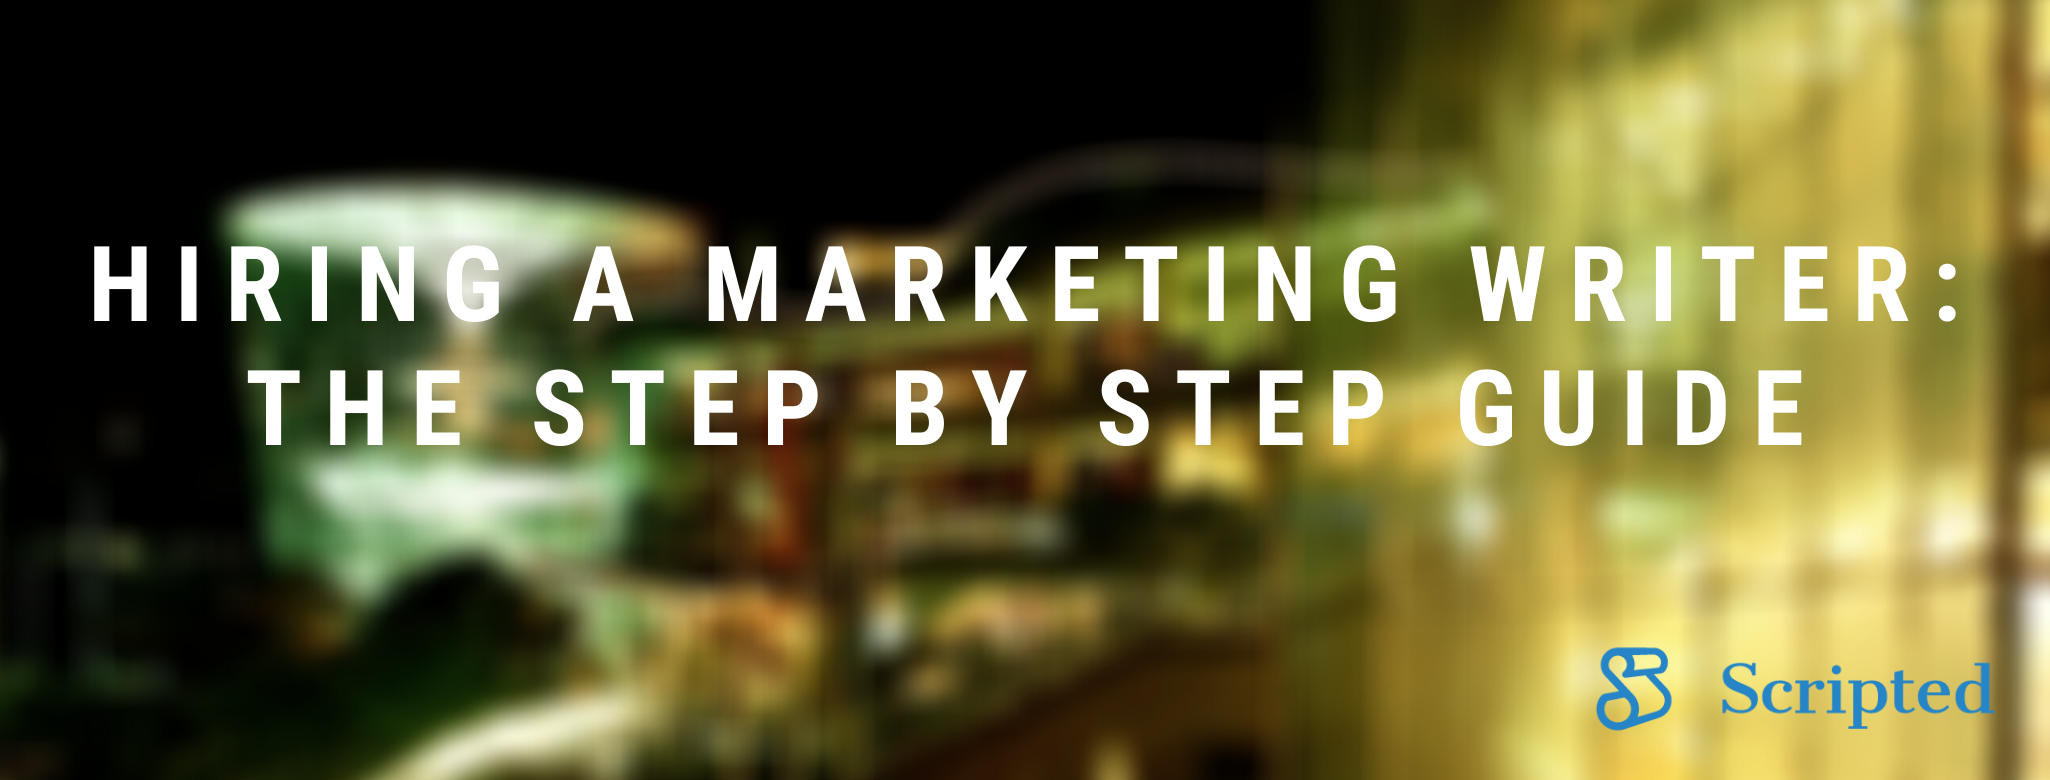 Hiring a Marketing Writer: The Step-by-Step Guide